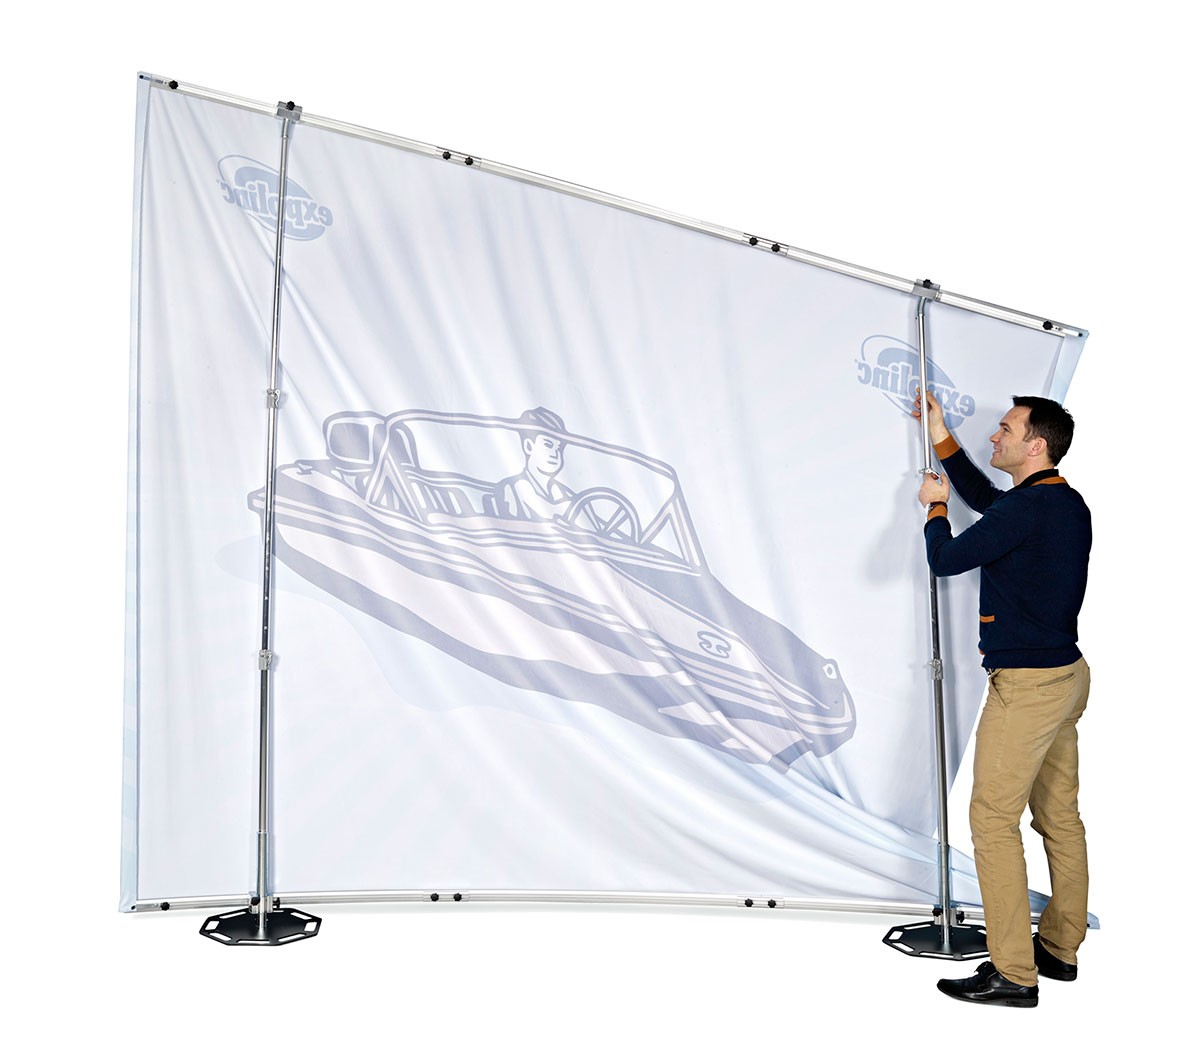 Expolinc Fabric System 10x8 Straight Wall